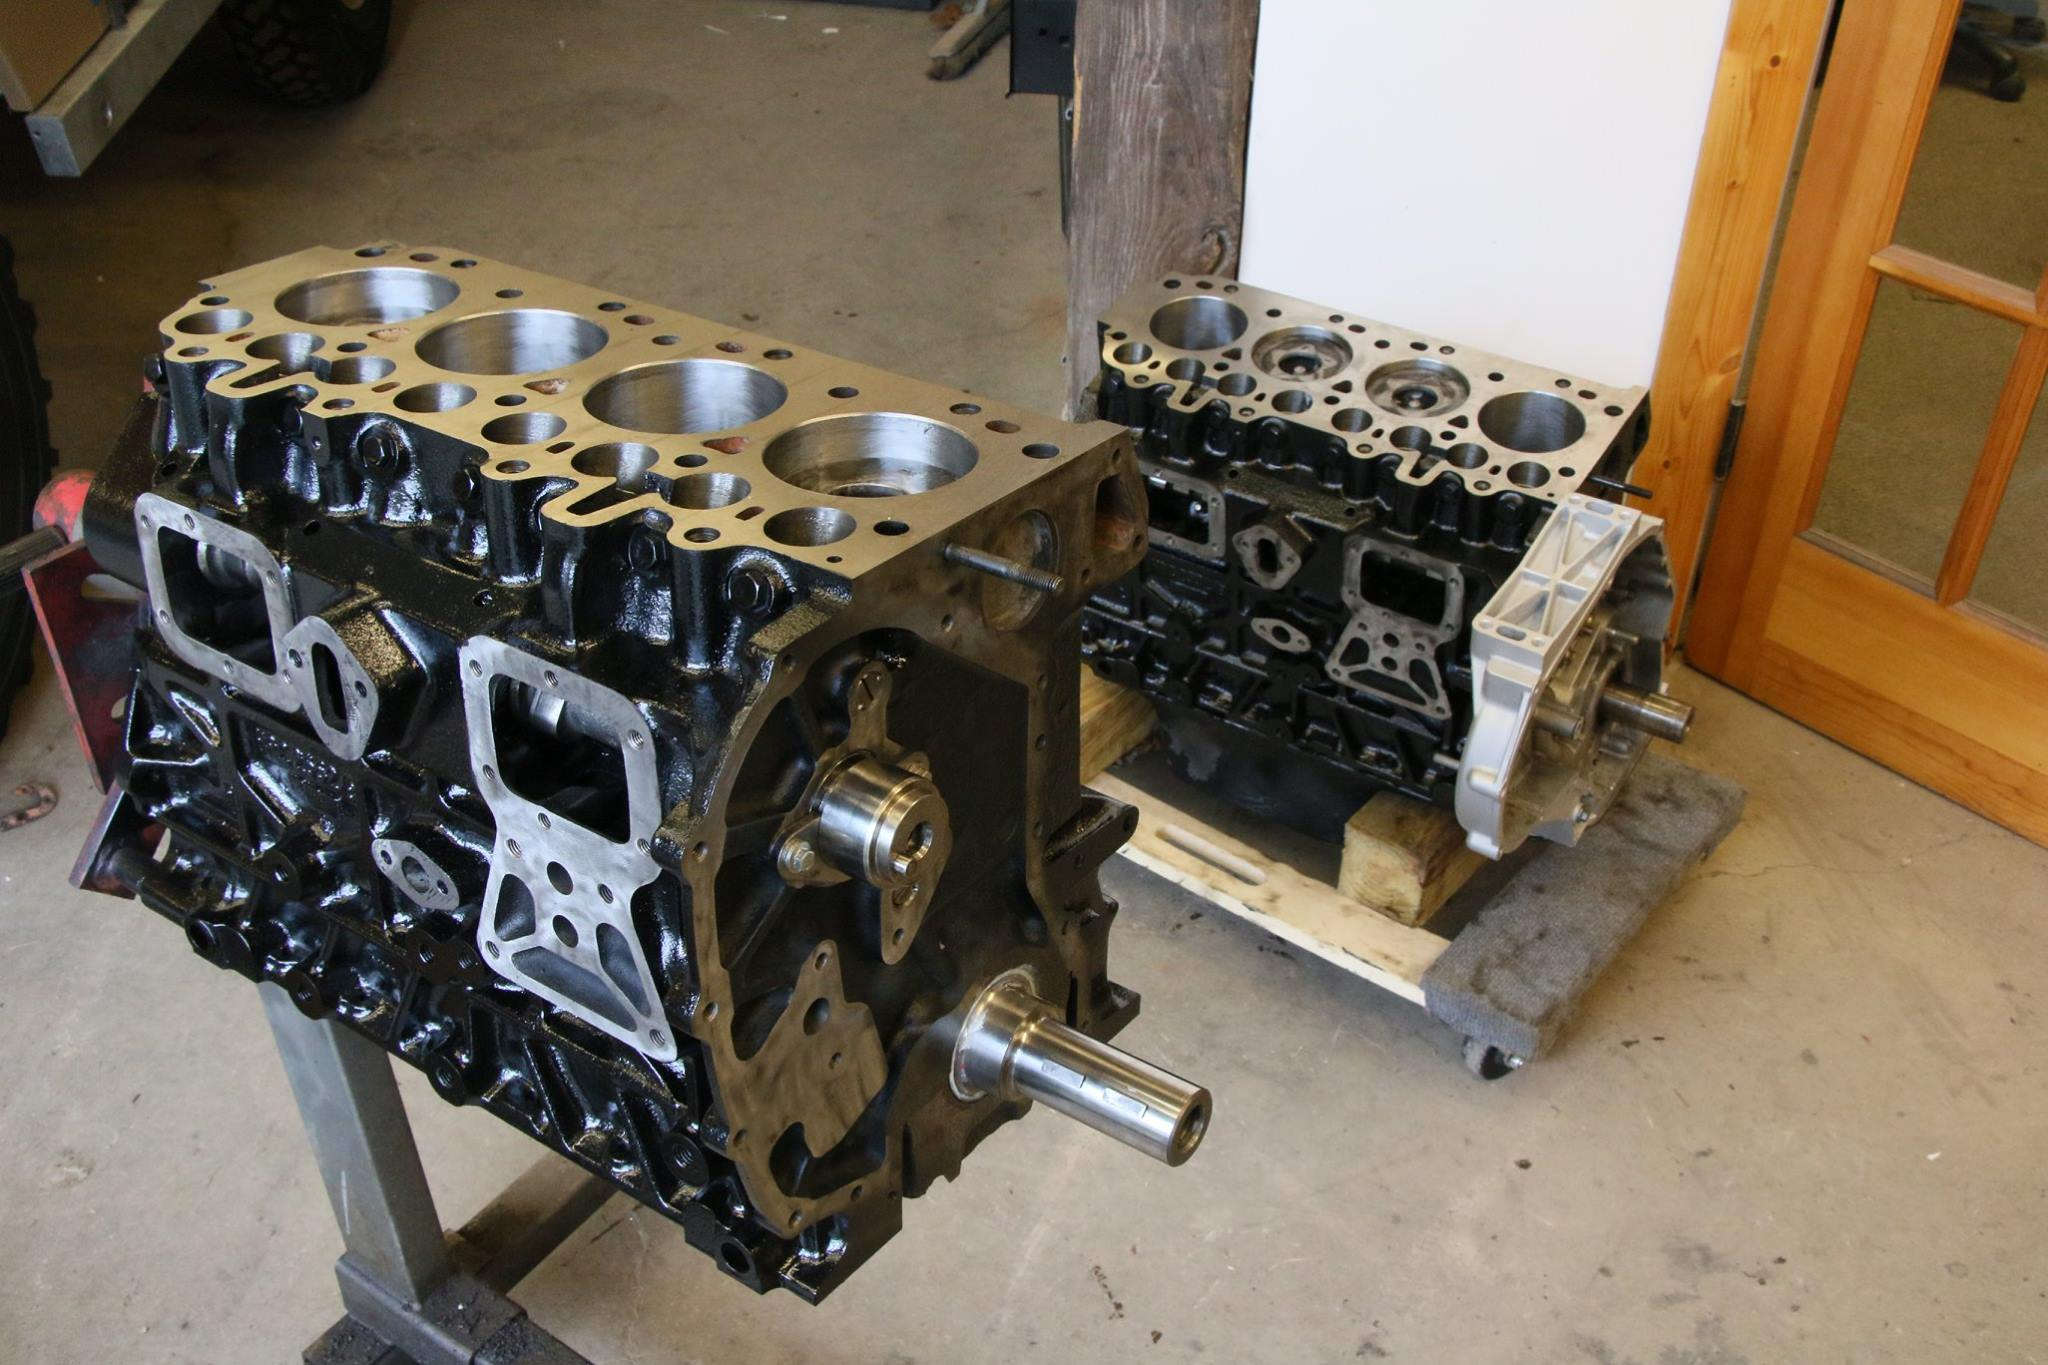 Rebuilt 300tdi engine for Land Rover.